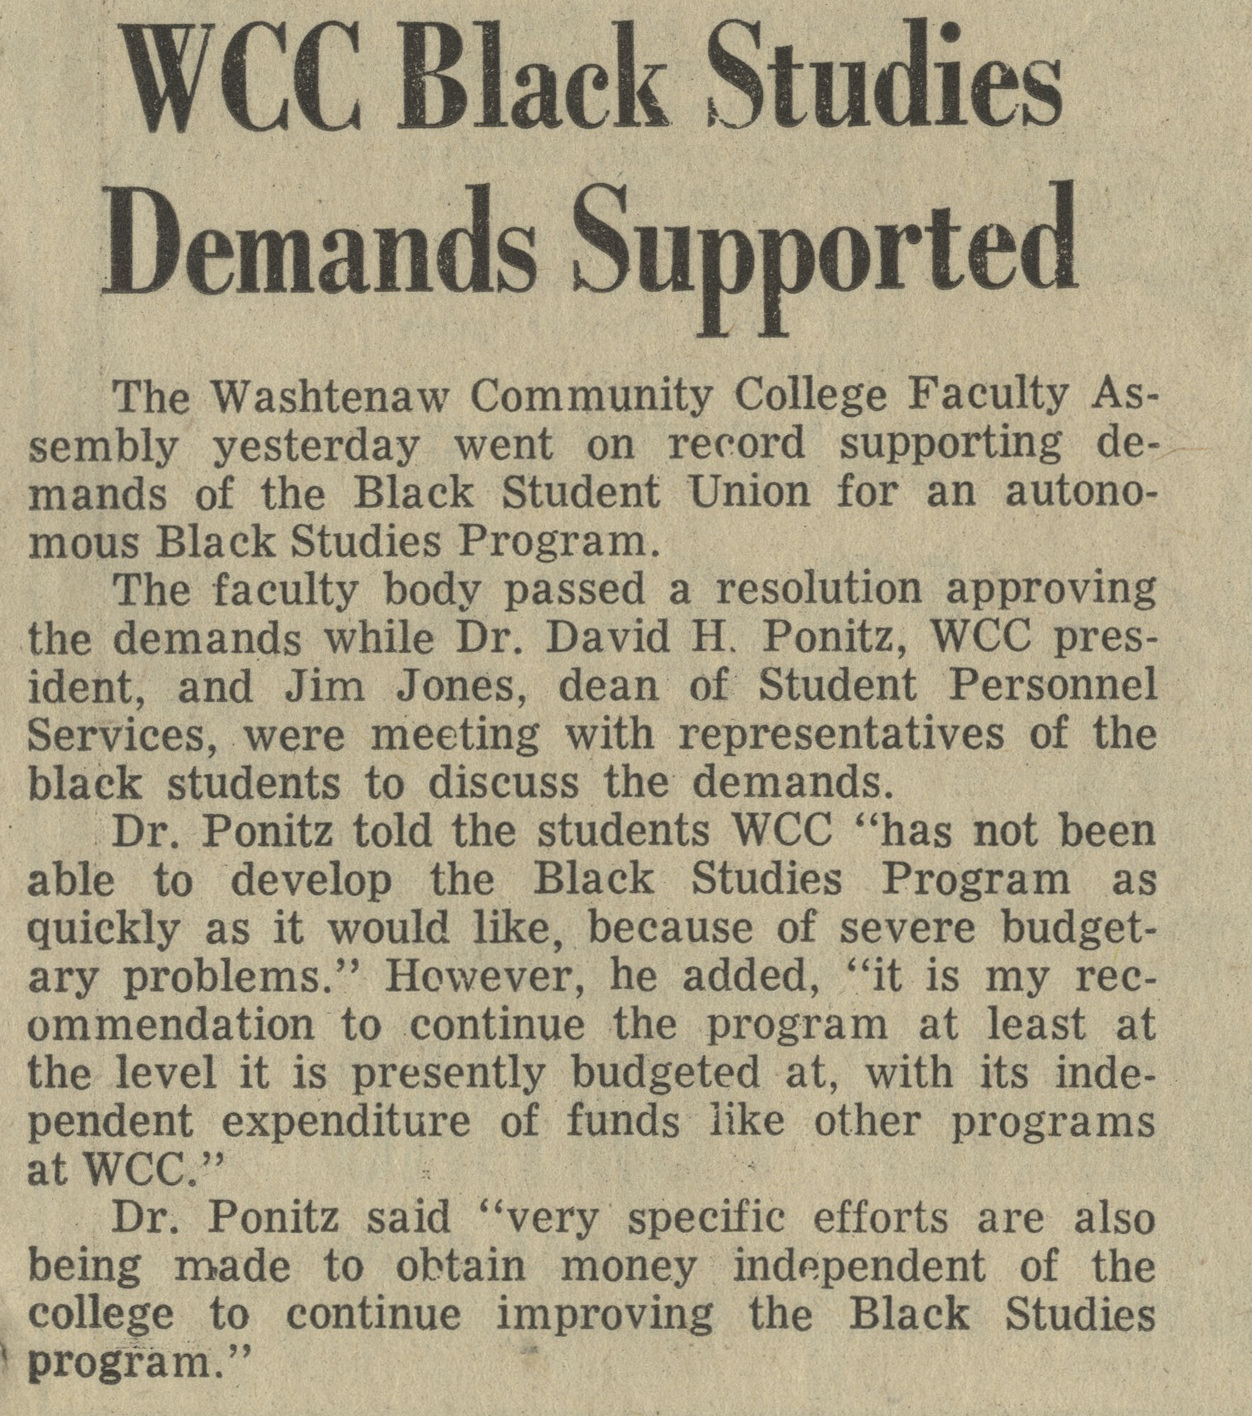 WCC Black Studies Demands Supported image